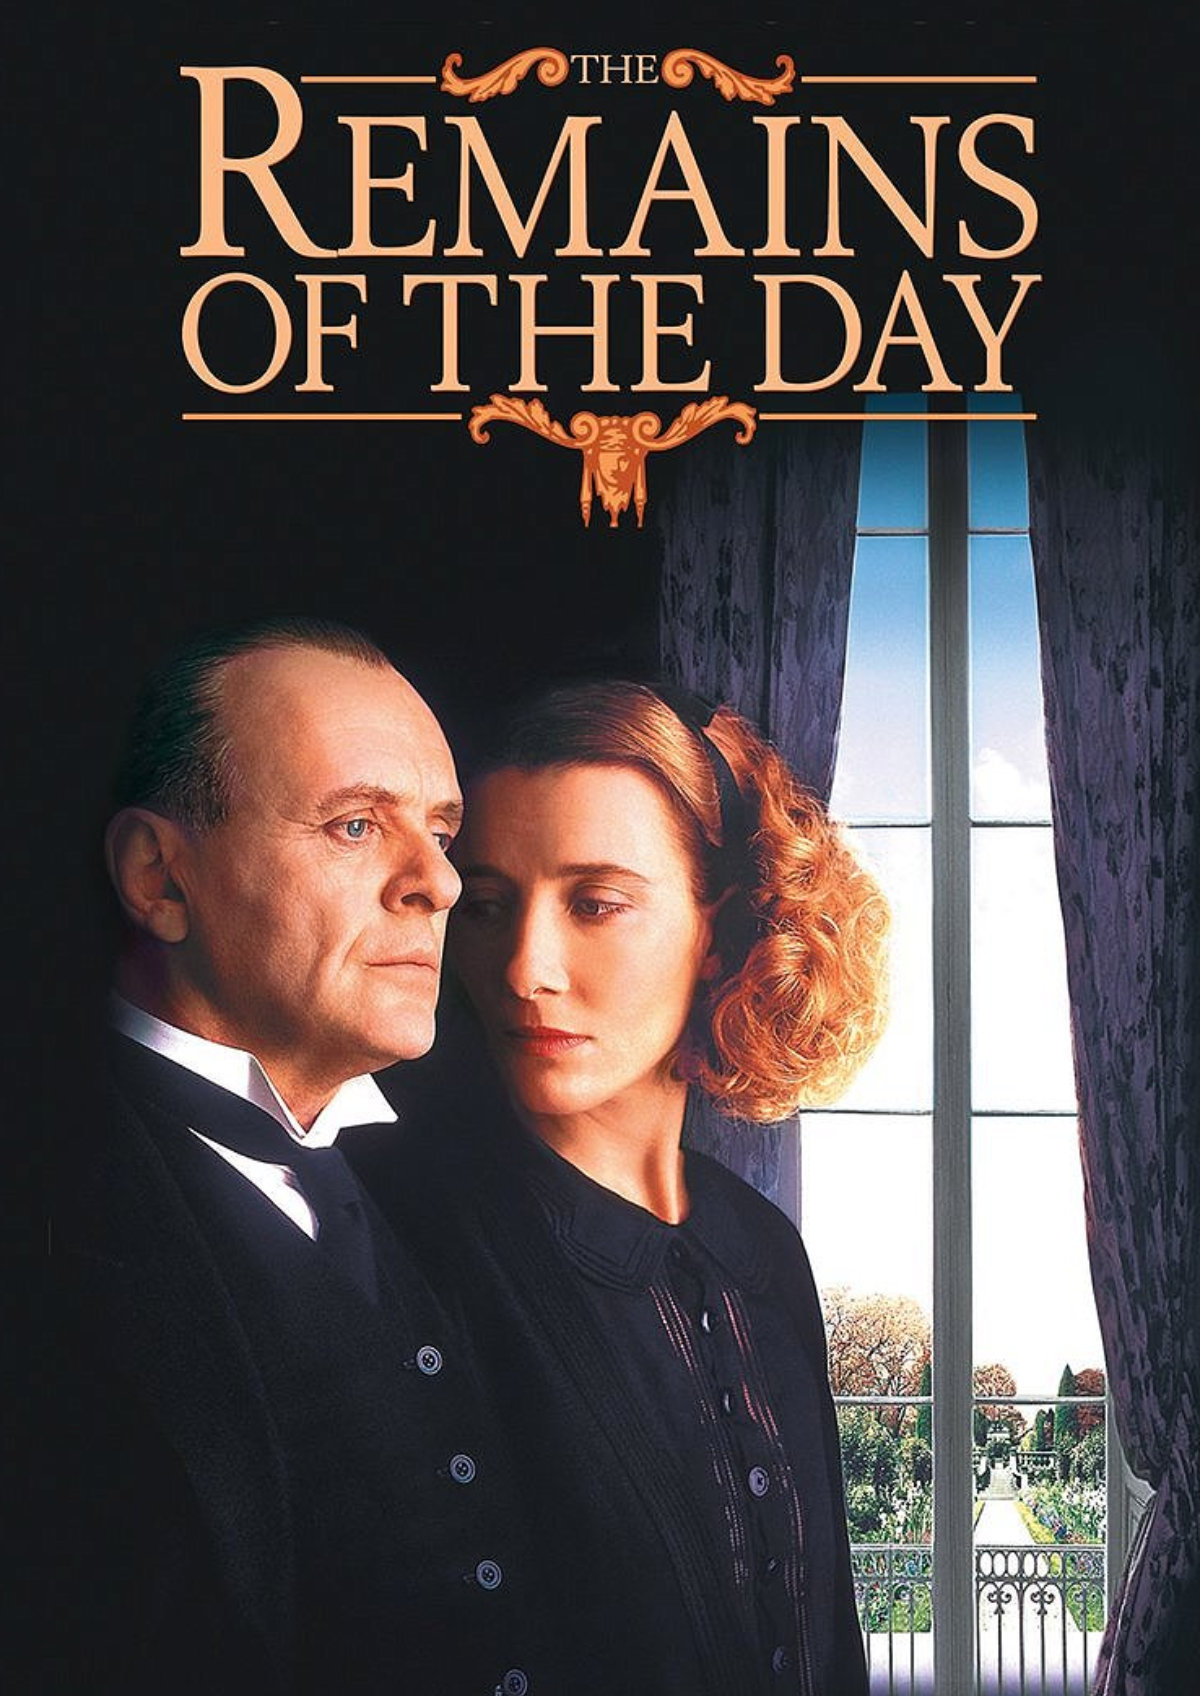 'The Remains Of The Day' movie poster